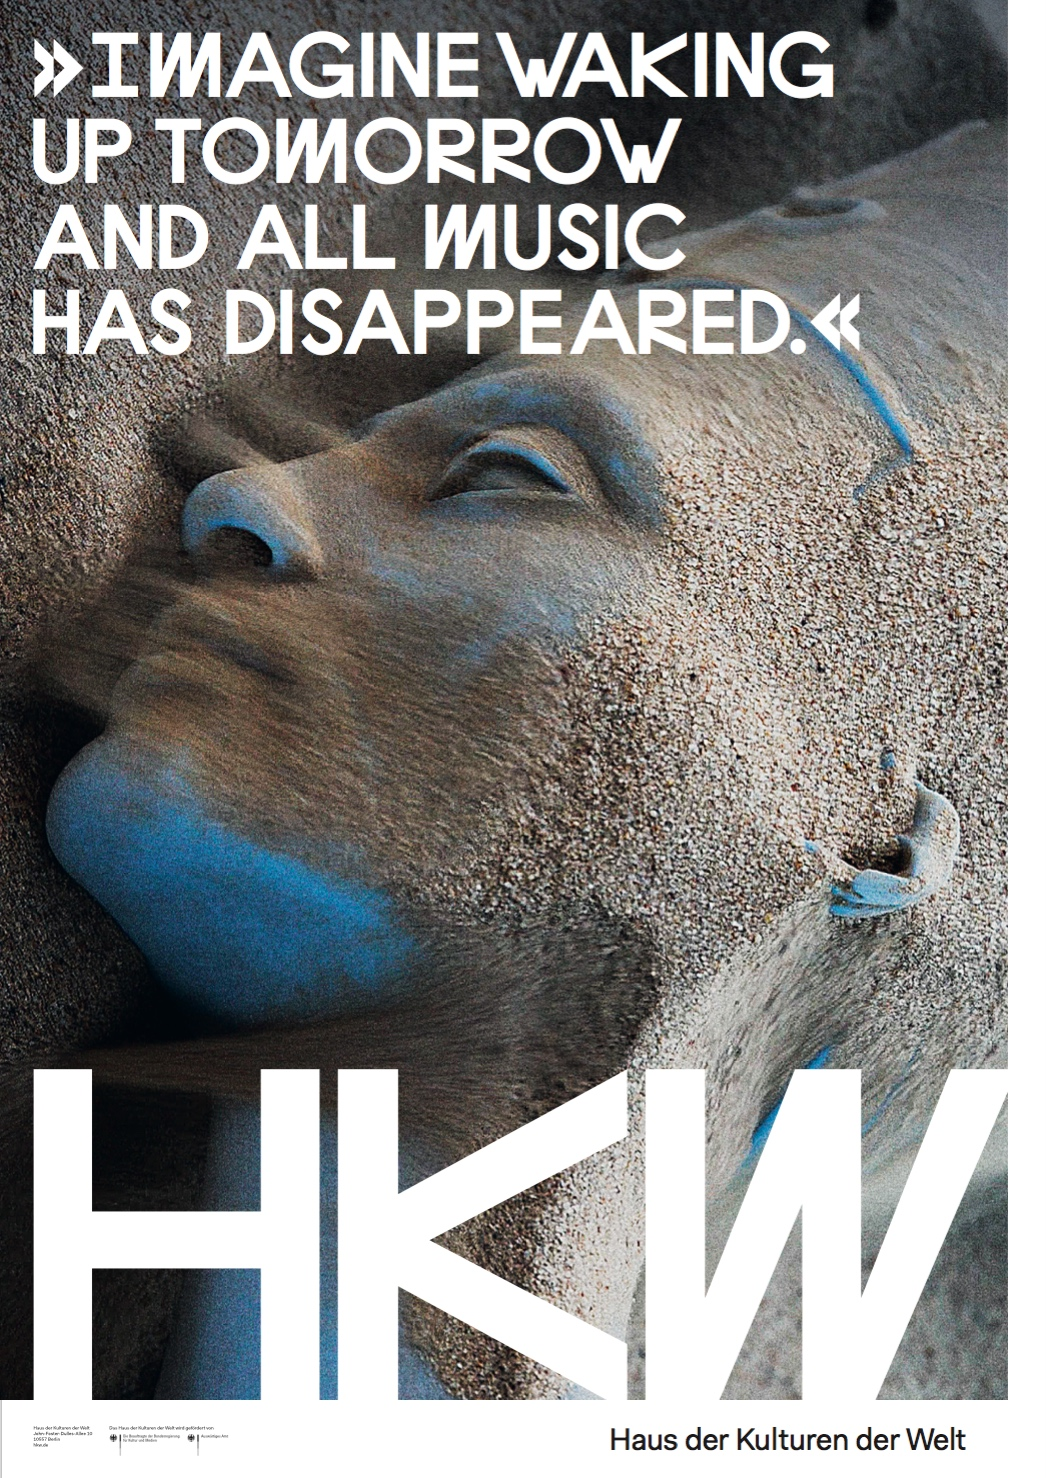 HKW public campaign poster